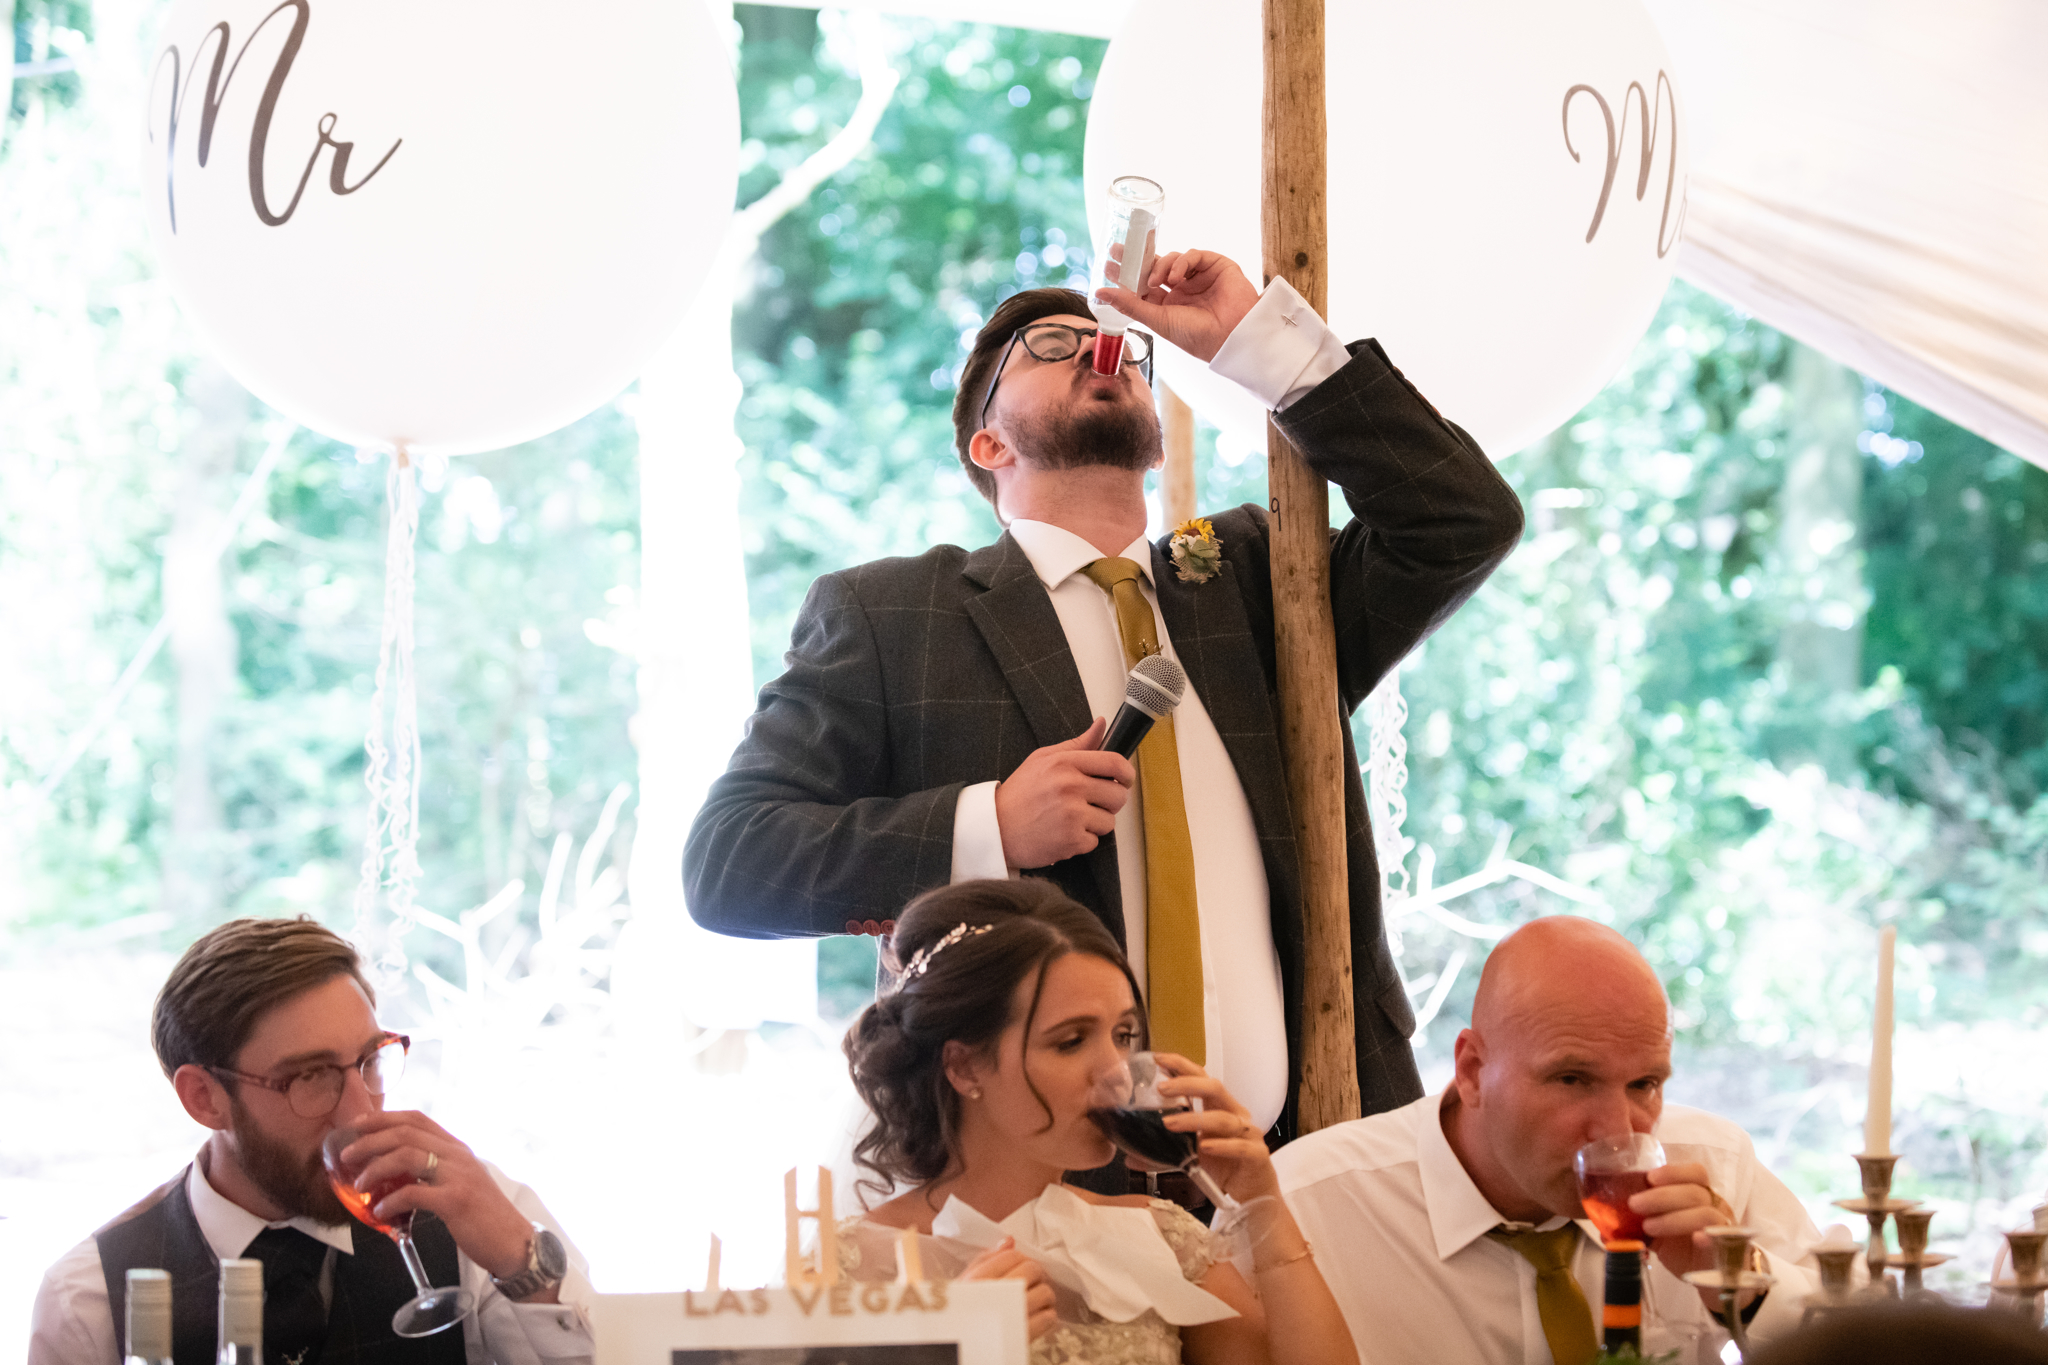 The best man down his drink at the end of his speech